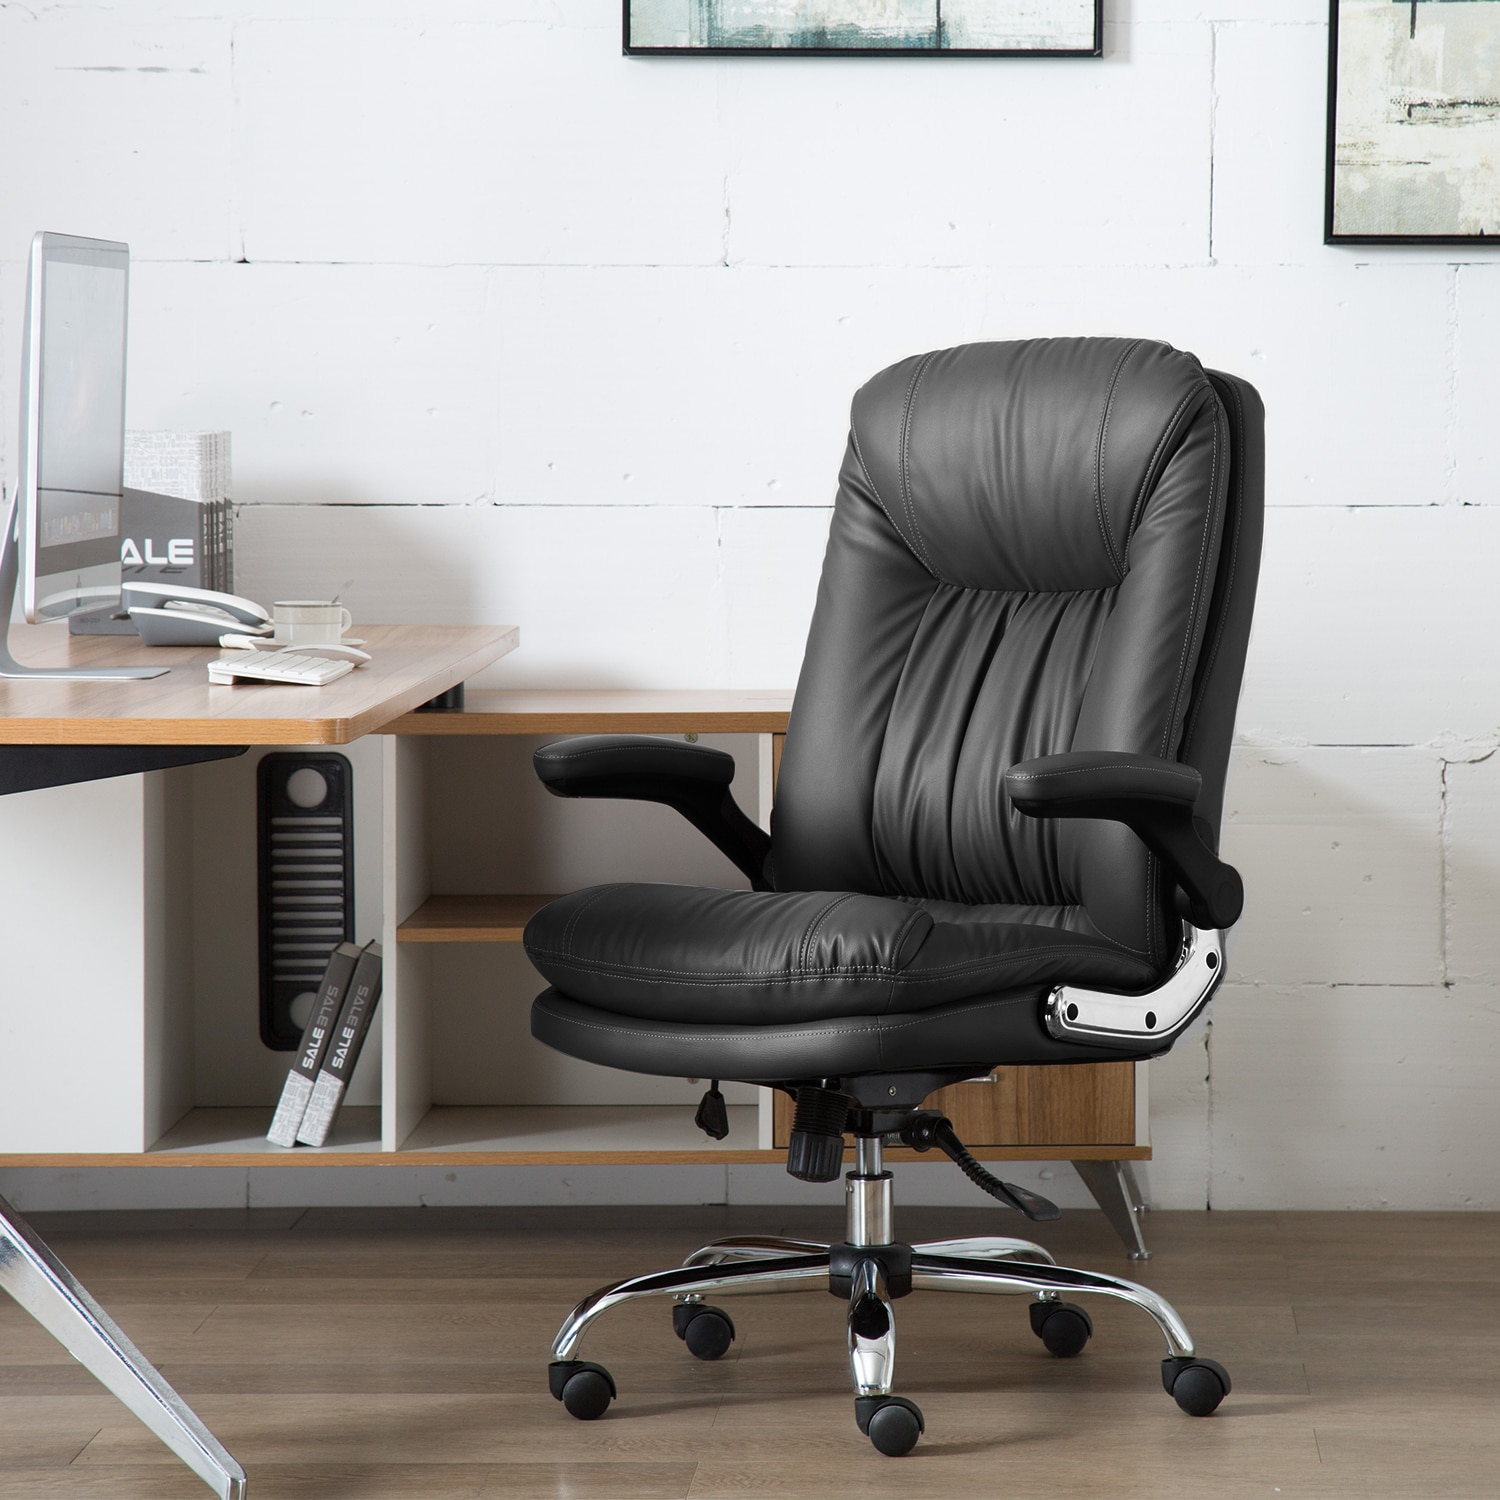 Ha1d1c47f3f0d46578a38d46a38b2dbcbr - Yamasoro Ergonomic Office chair Faux PU Leather Chair Executive Computer Desk Chairs Managerial Executive Chairs